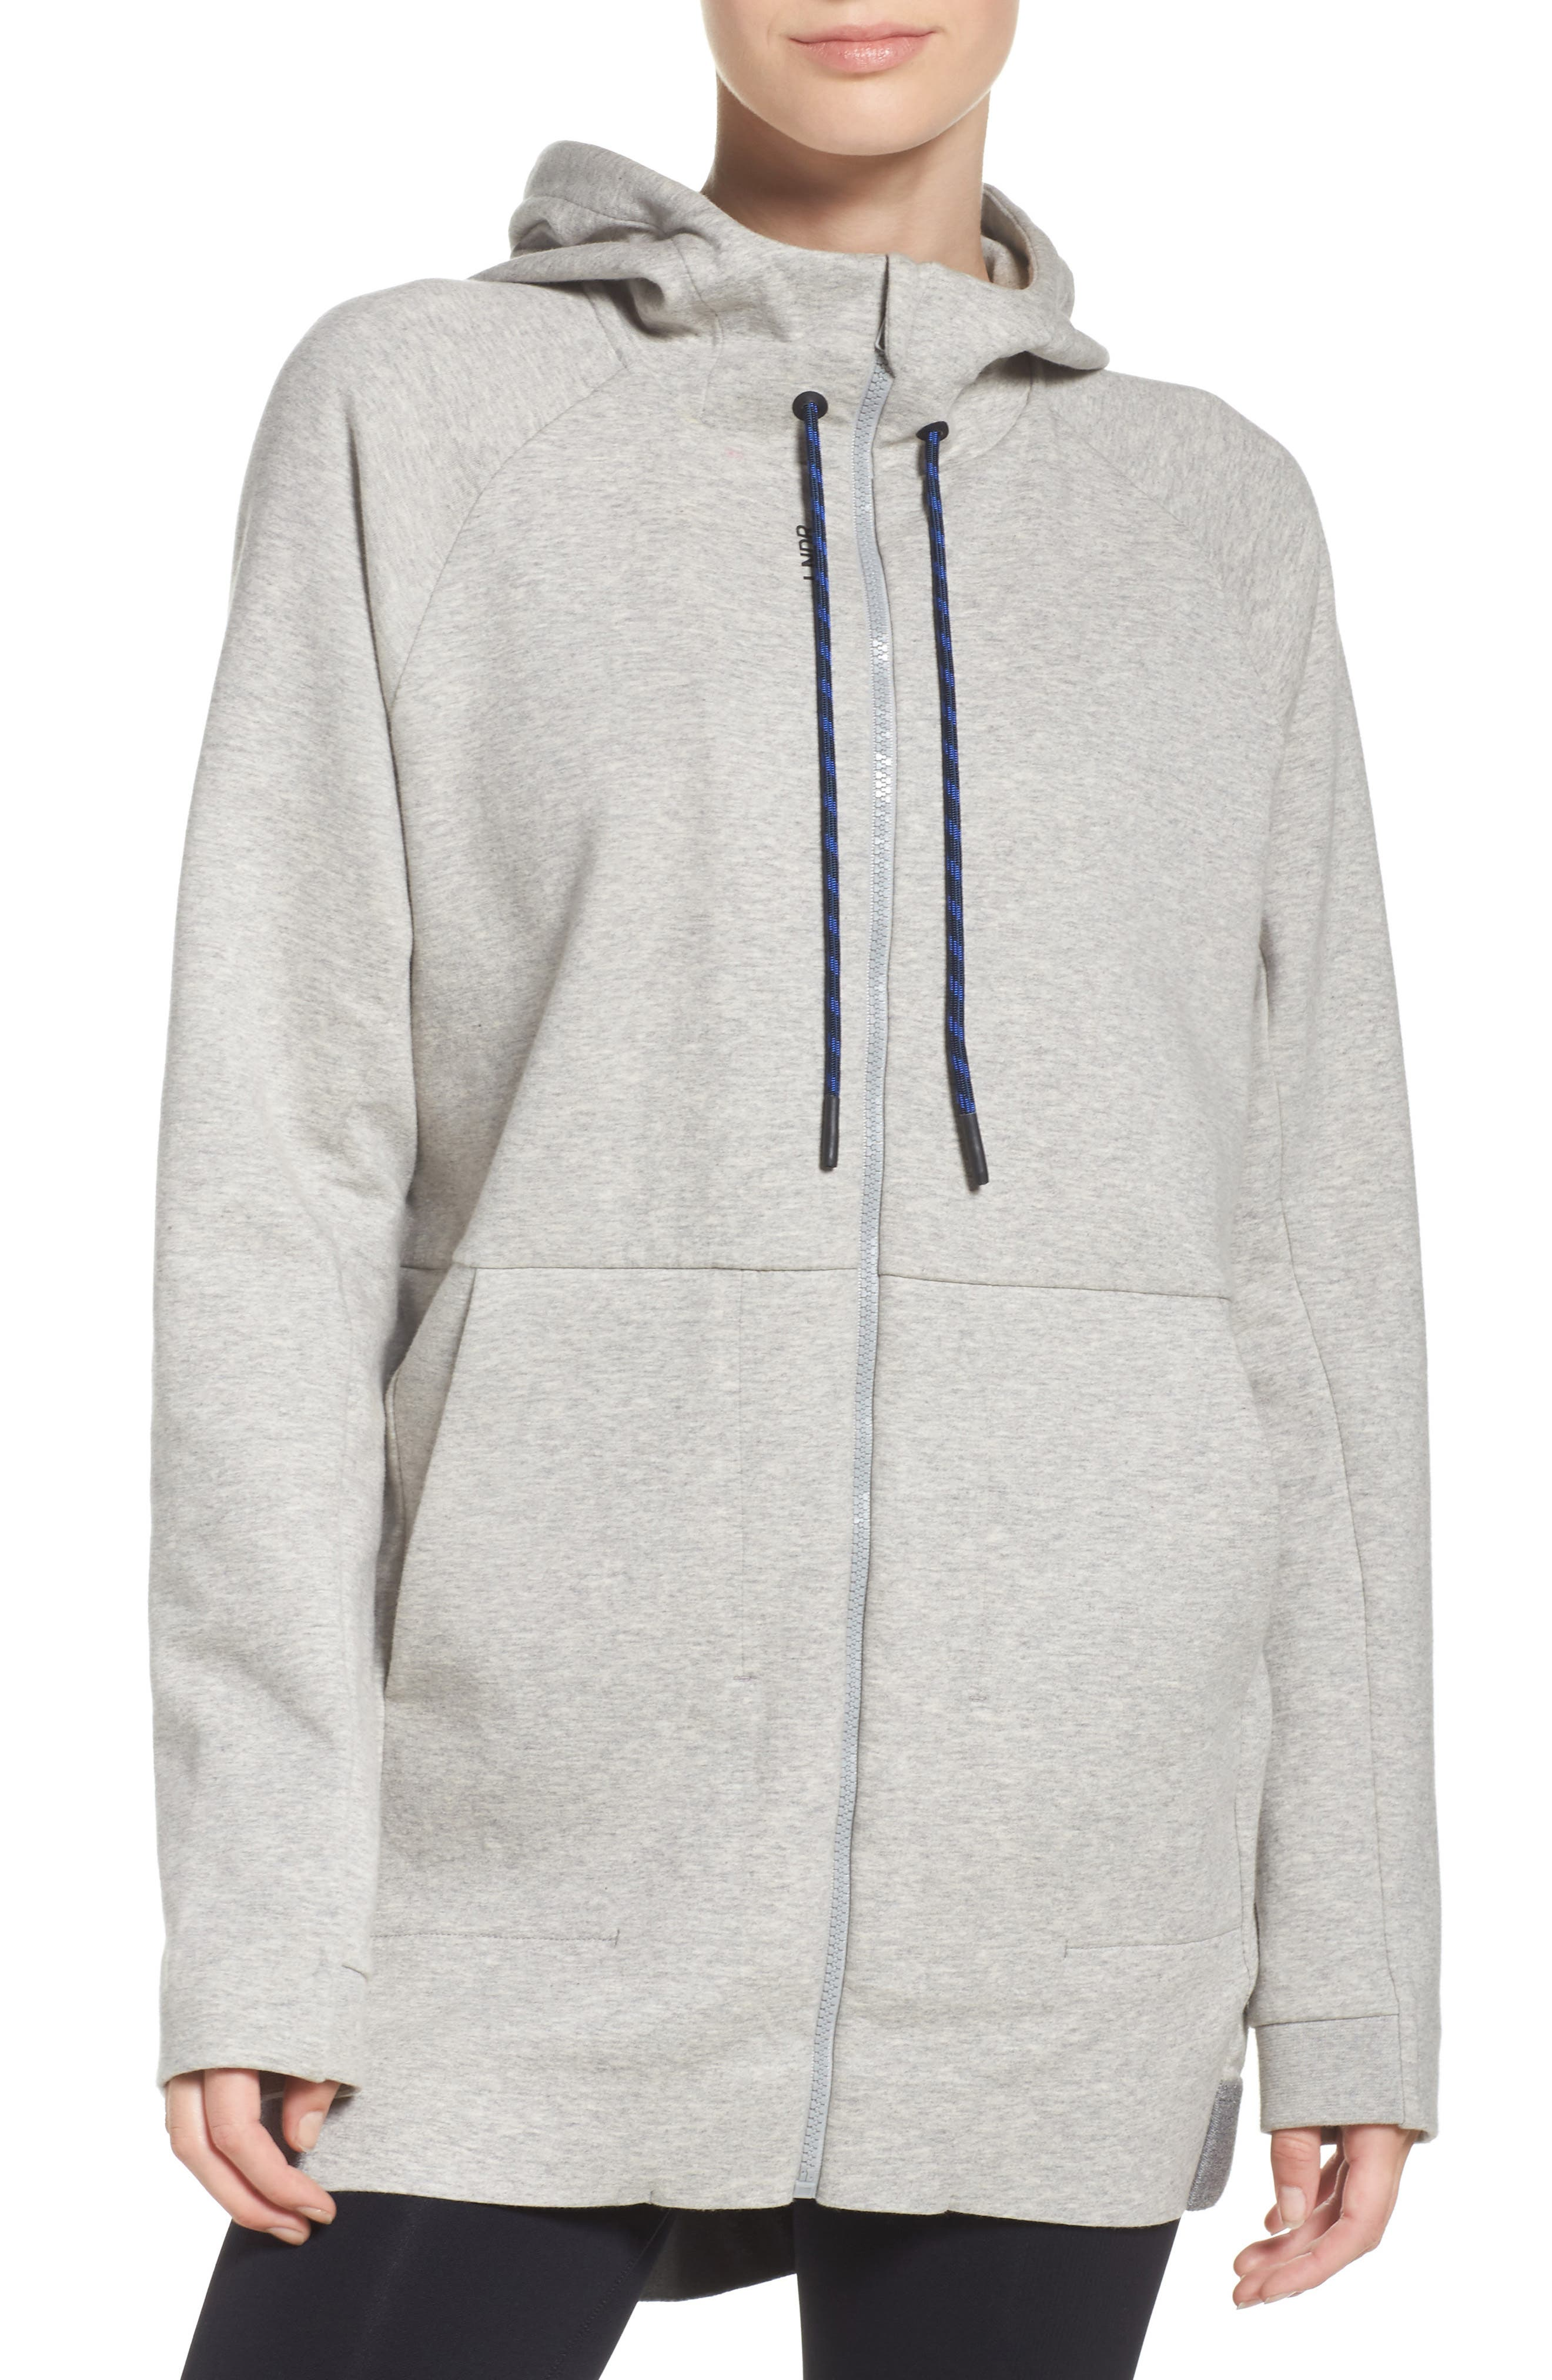 Switch Oversize Hoodie,                             Main thumbnail 1, color,                             Grey